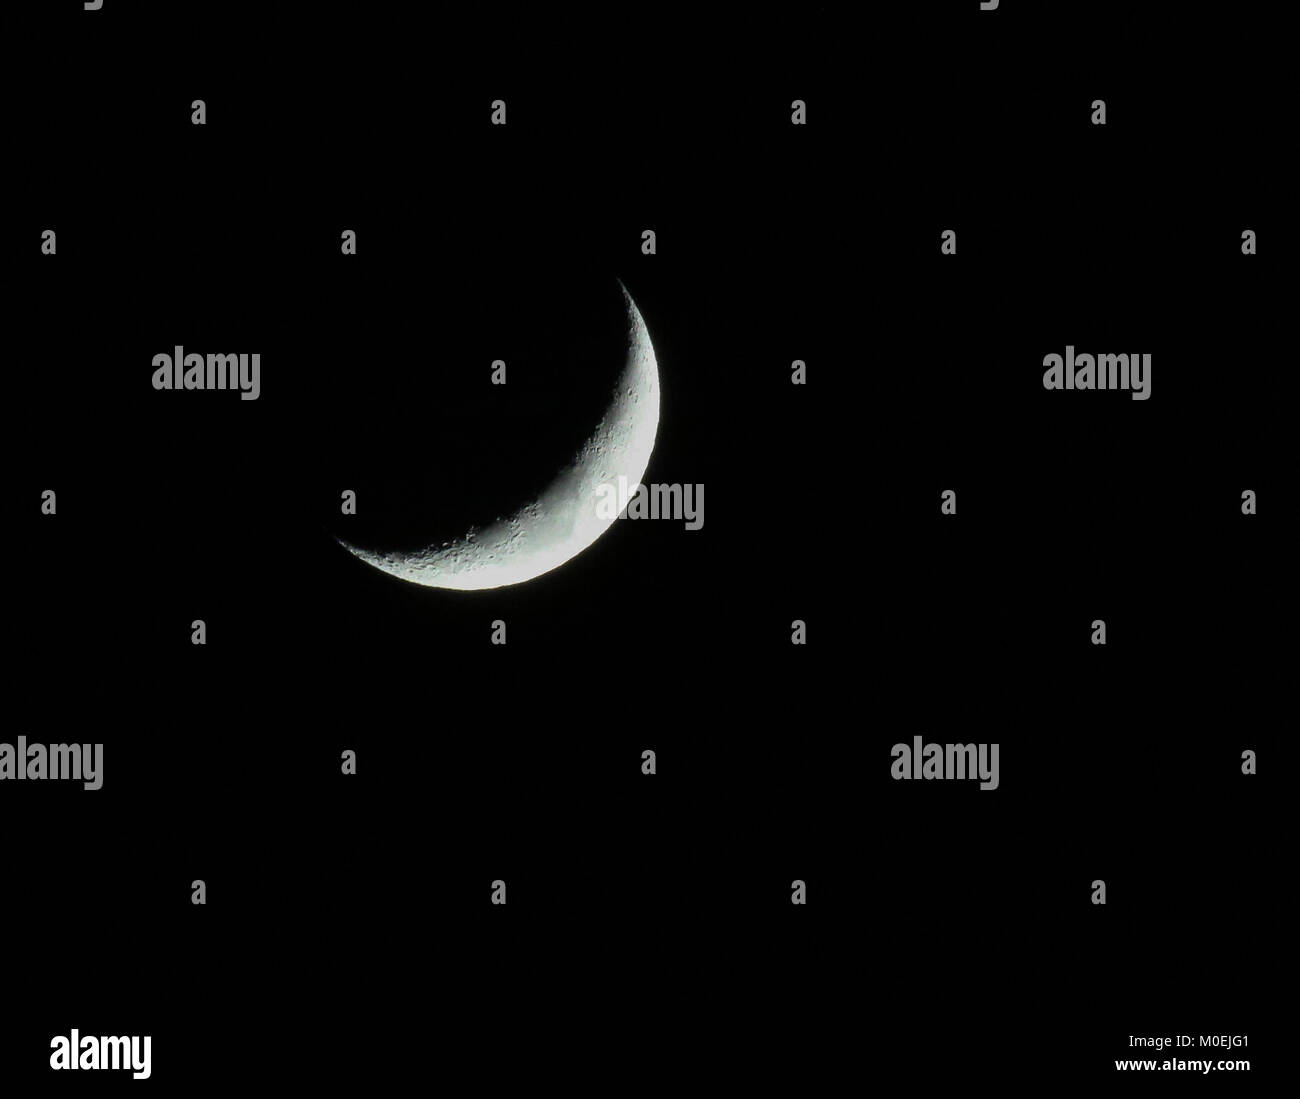 County Armagh, Northern, Ireland. 21st Jan, 2018. UK night sky - a waxing crescent rmoon in January 2018 low in - Stock Image